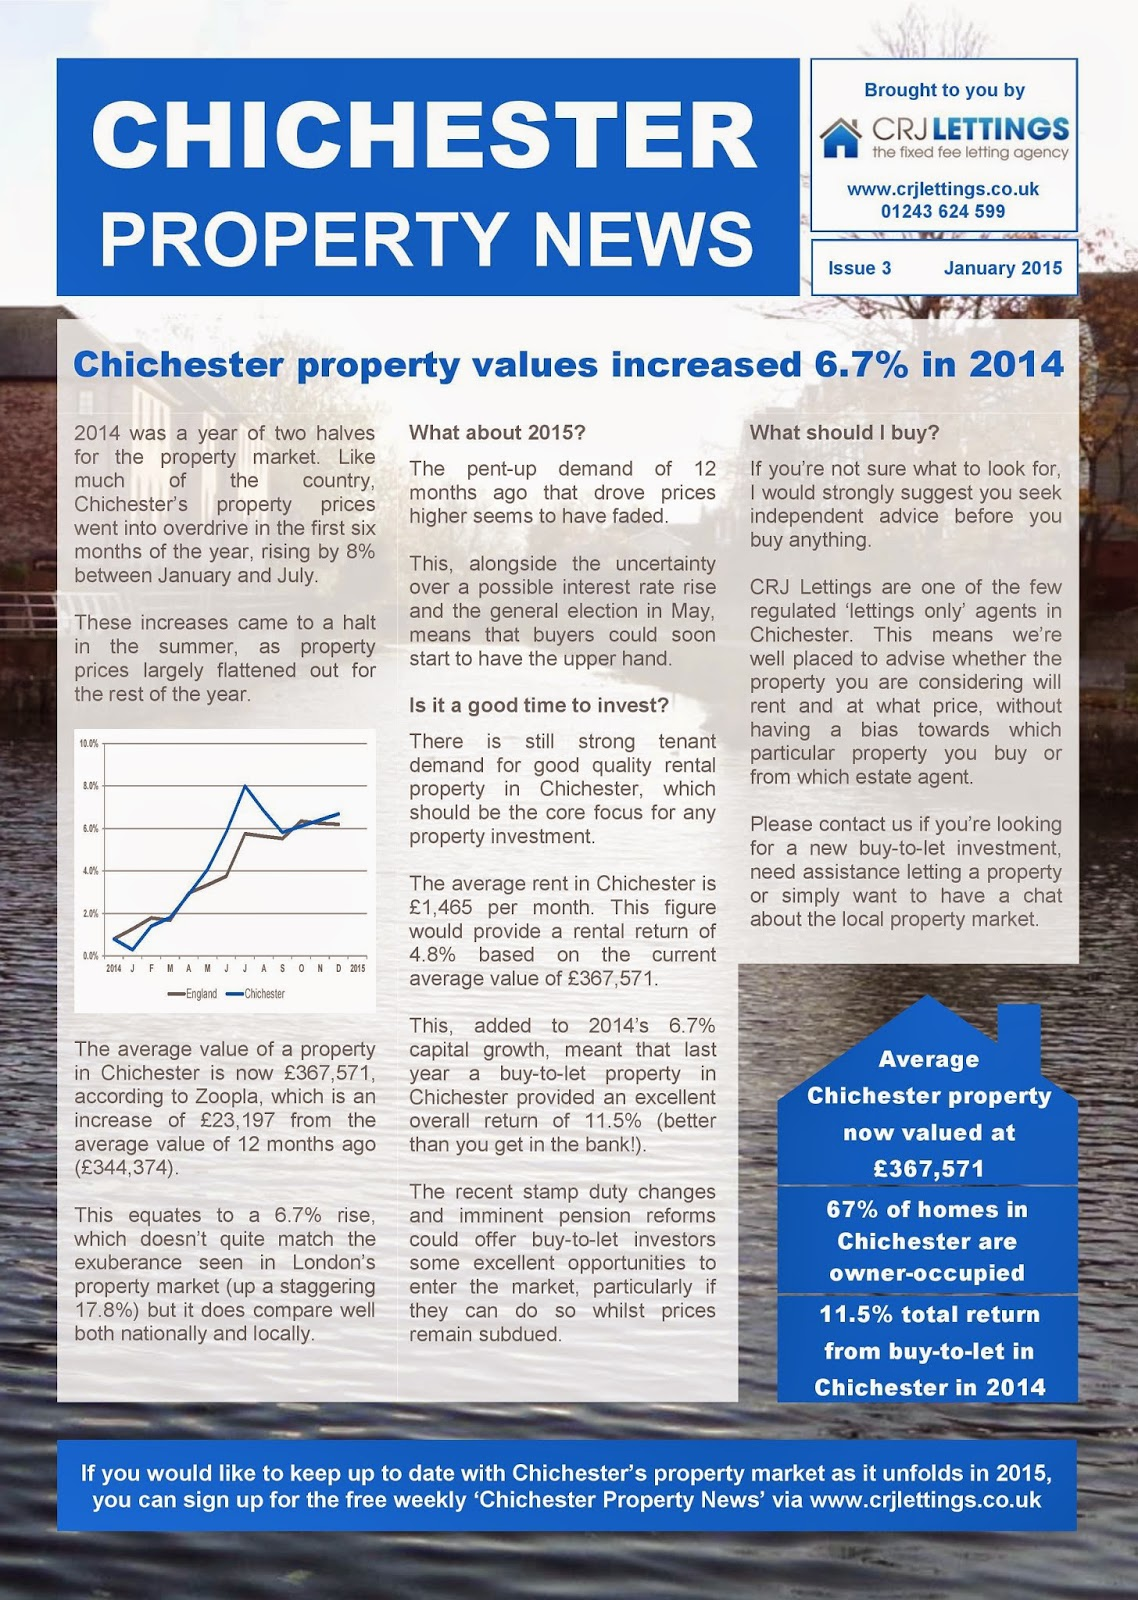 Chichester property news - page 1